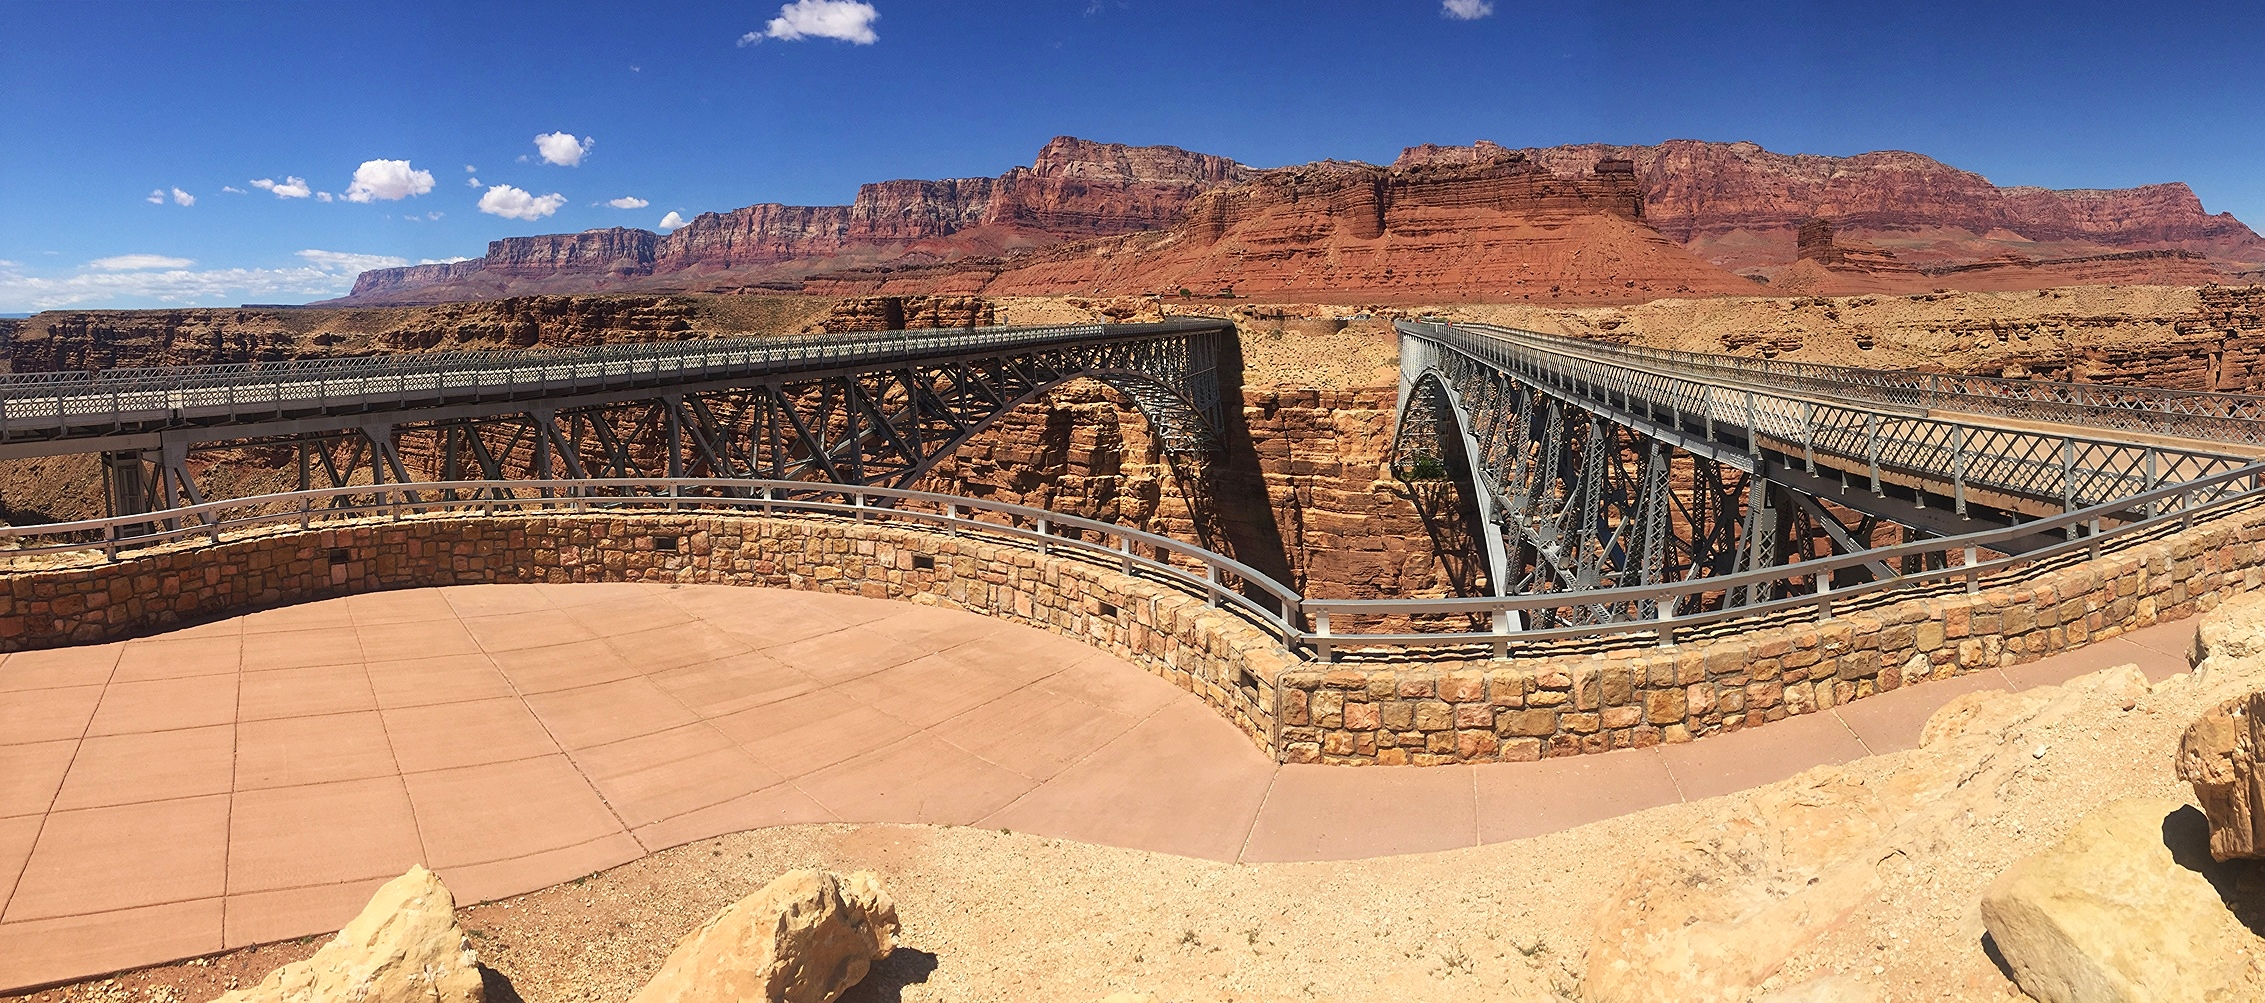 Navajo Bridge overlooking Vermillion Cliffs